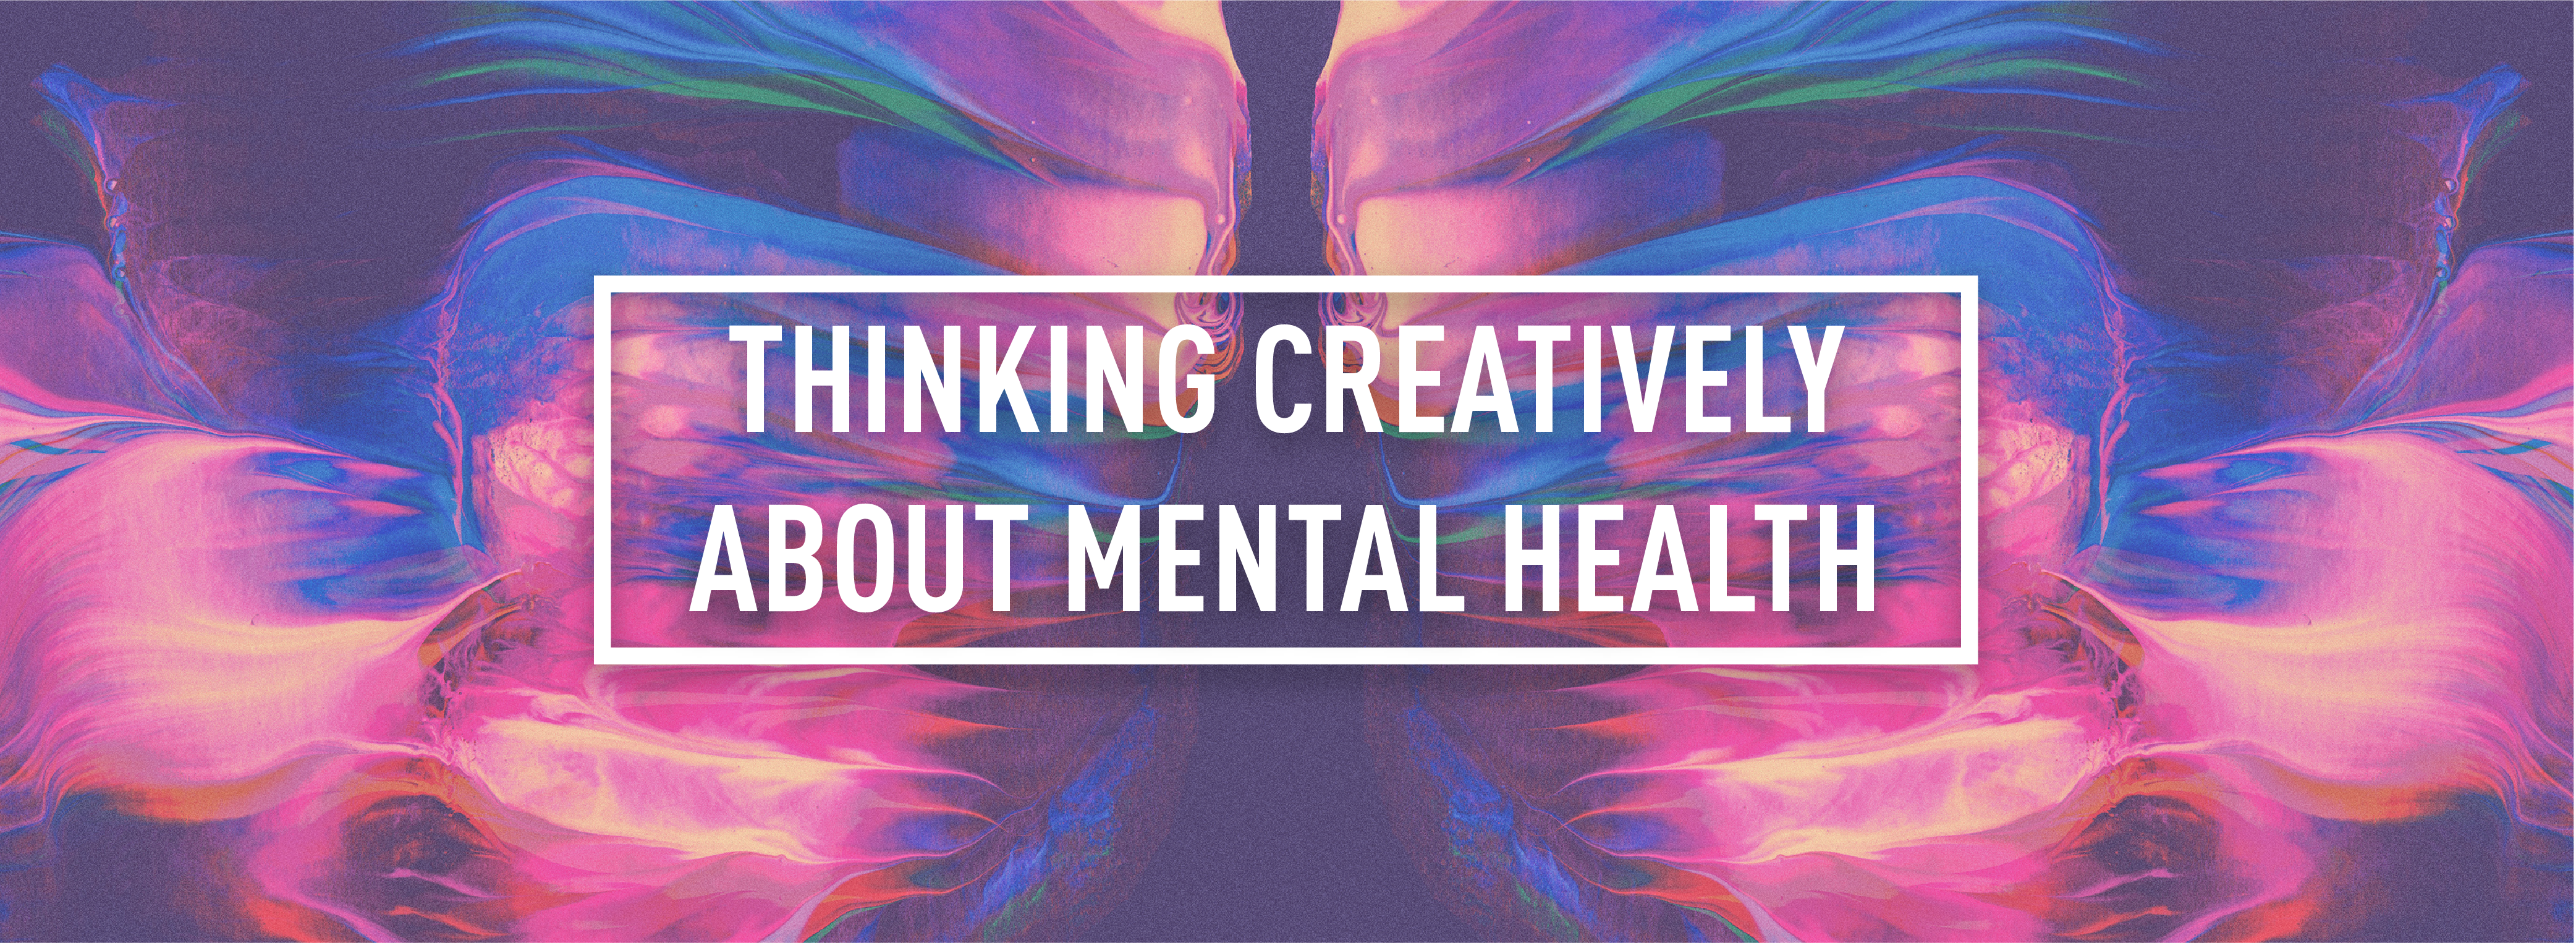 THINKING CREATIVELY ABOUT MENTAL HEALTH_Webpage Header